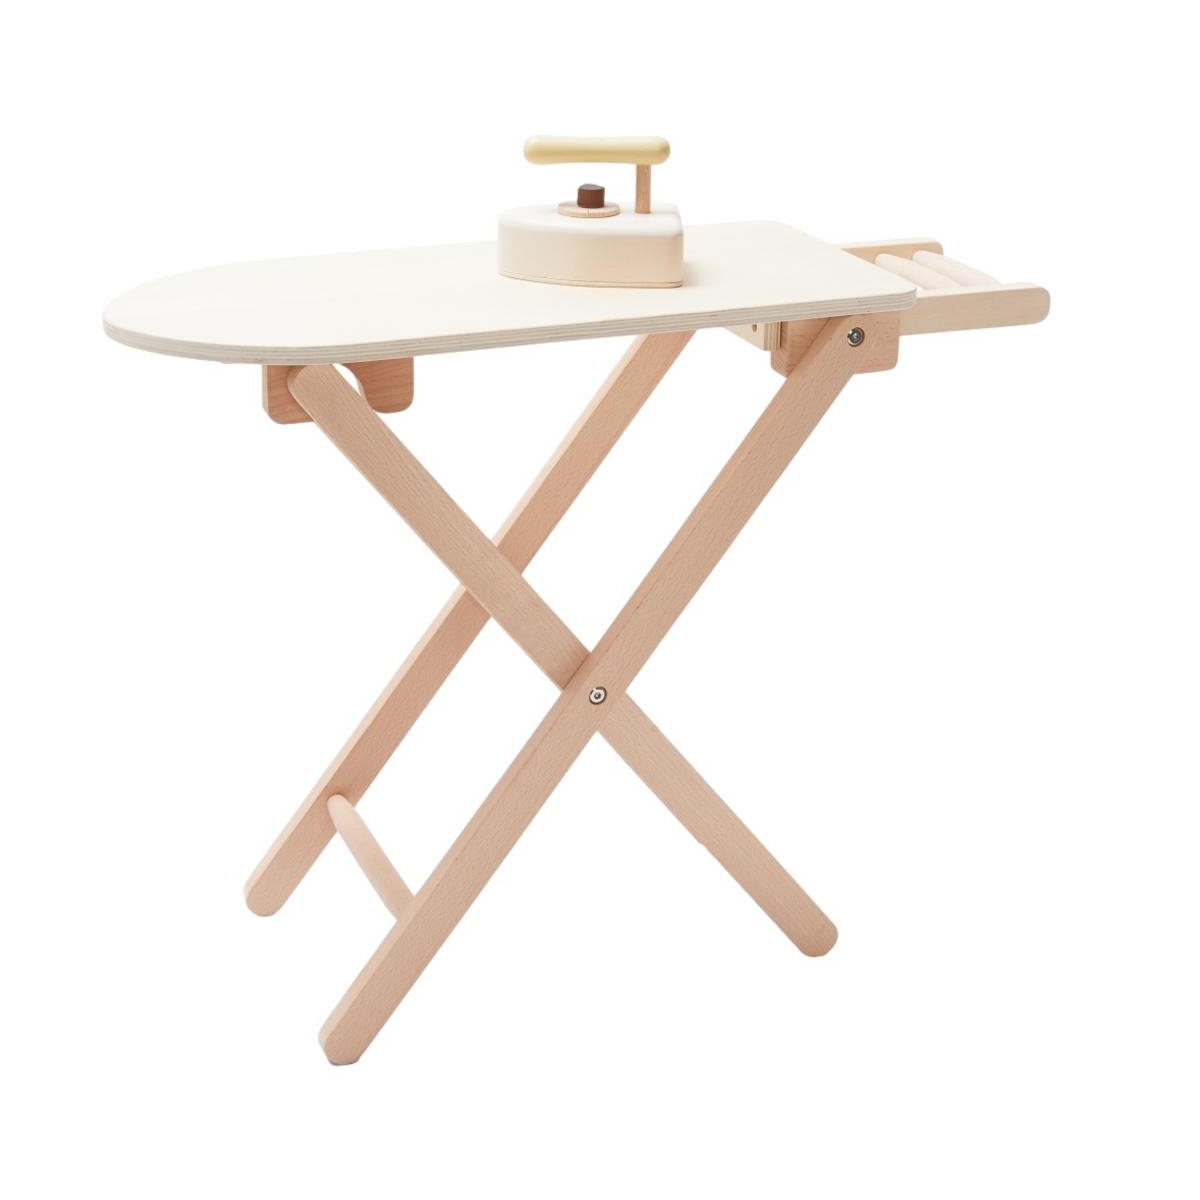 Konges Slojd - Ironing board set - 1